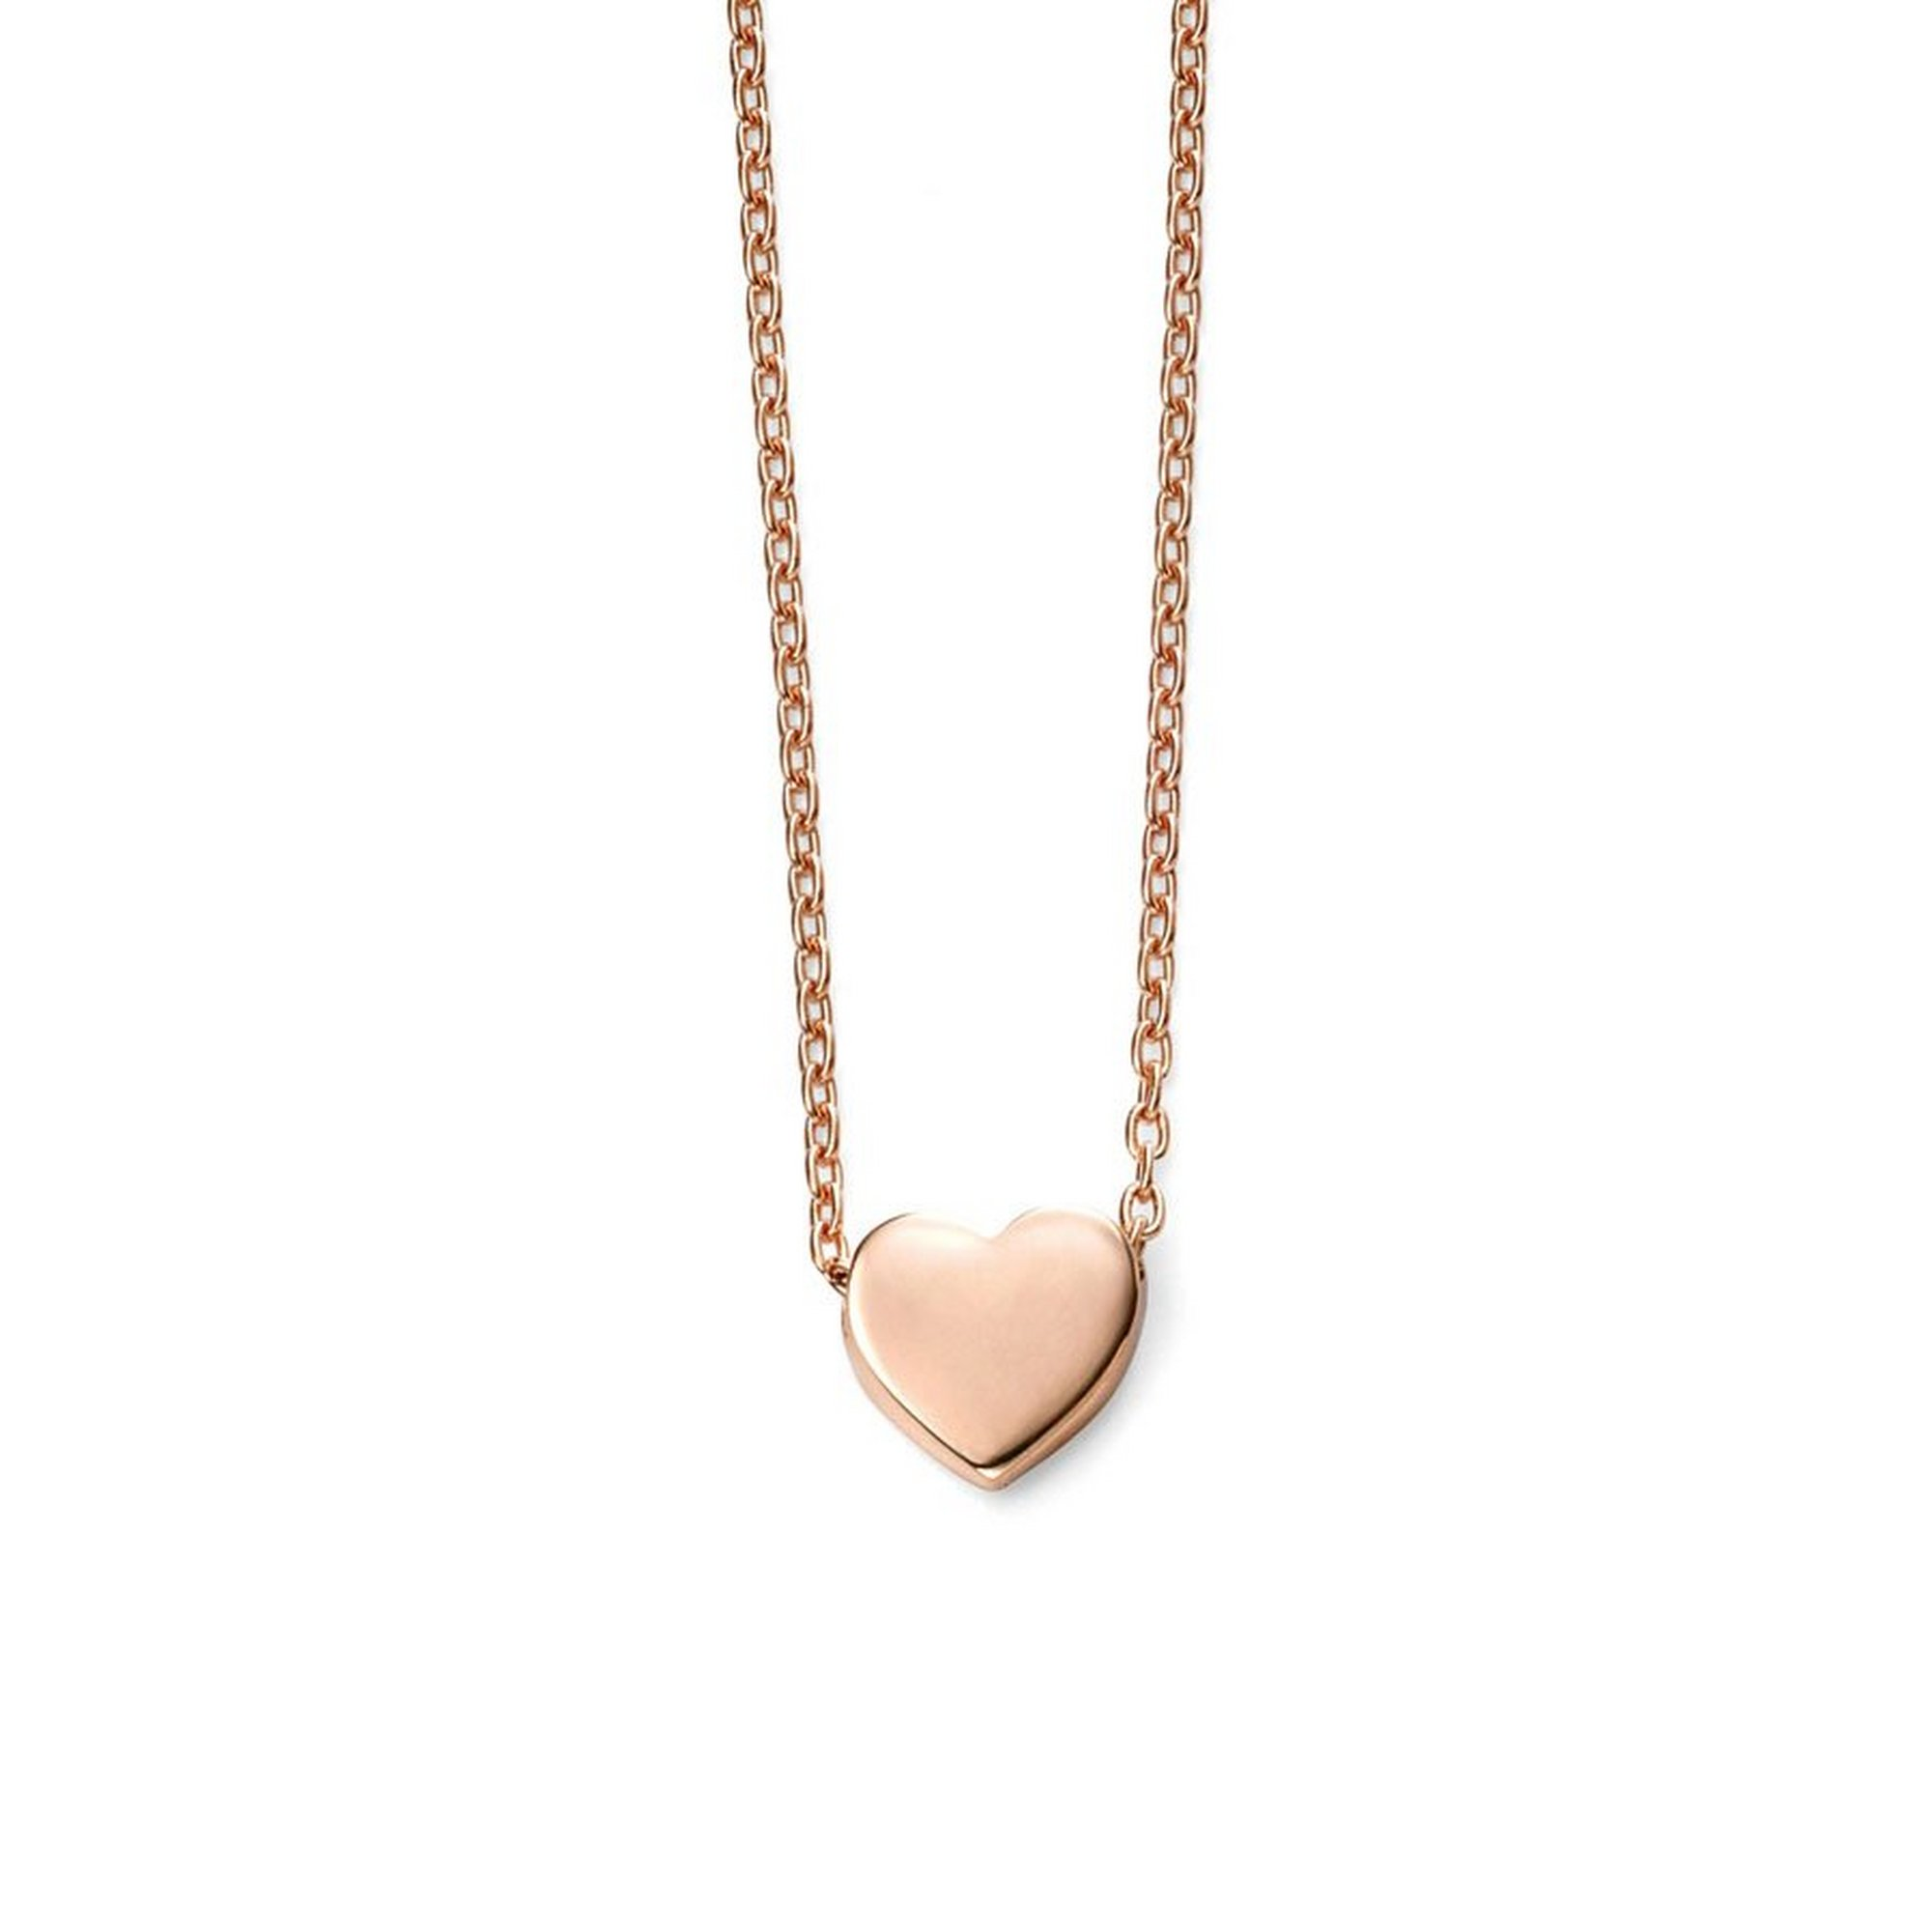 Image of 9ct Rose Gold Heart Charm Necklace